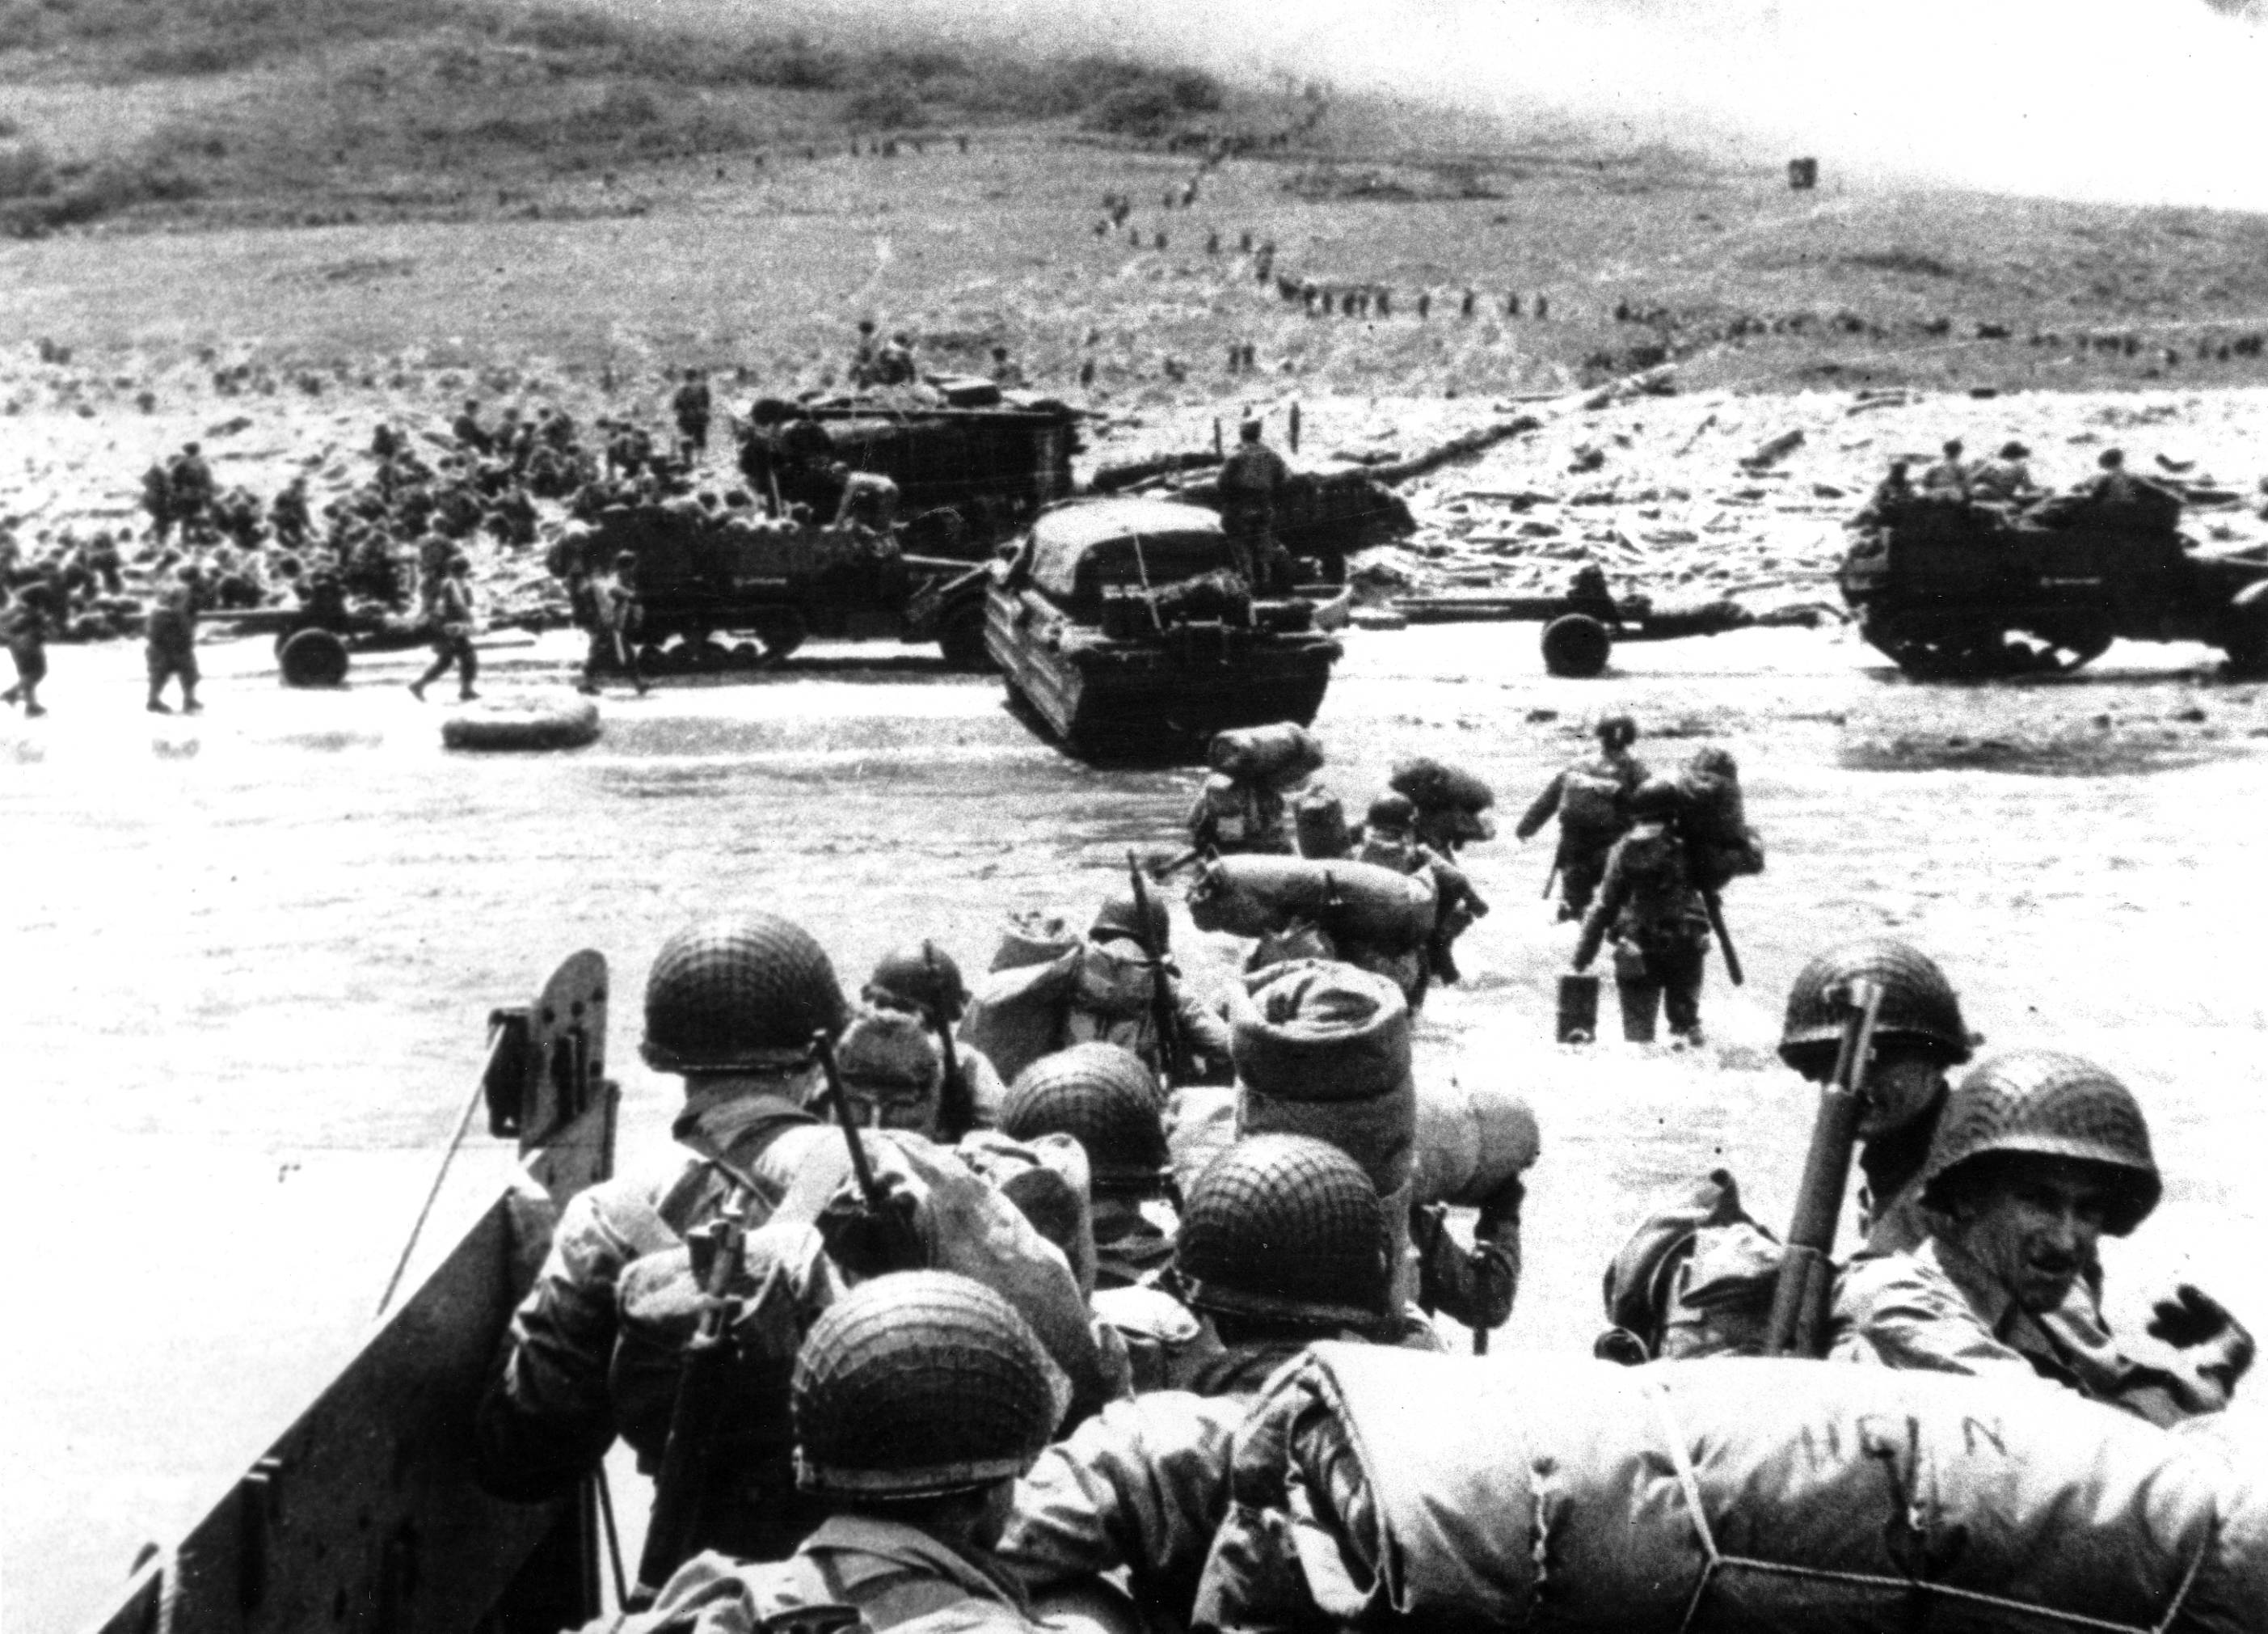 Ducks (amphibious trucks) and a half-track follow foot troops ashore during the World War II opening invasion of France on a 100-mile front along the Normandy coast by Allied forces on June 6, 1944.